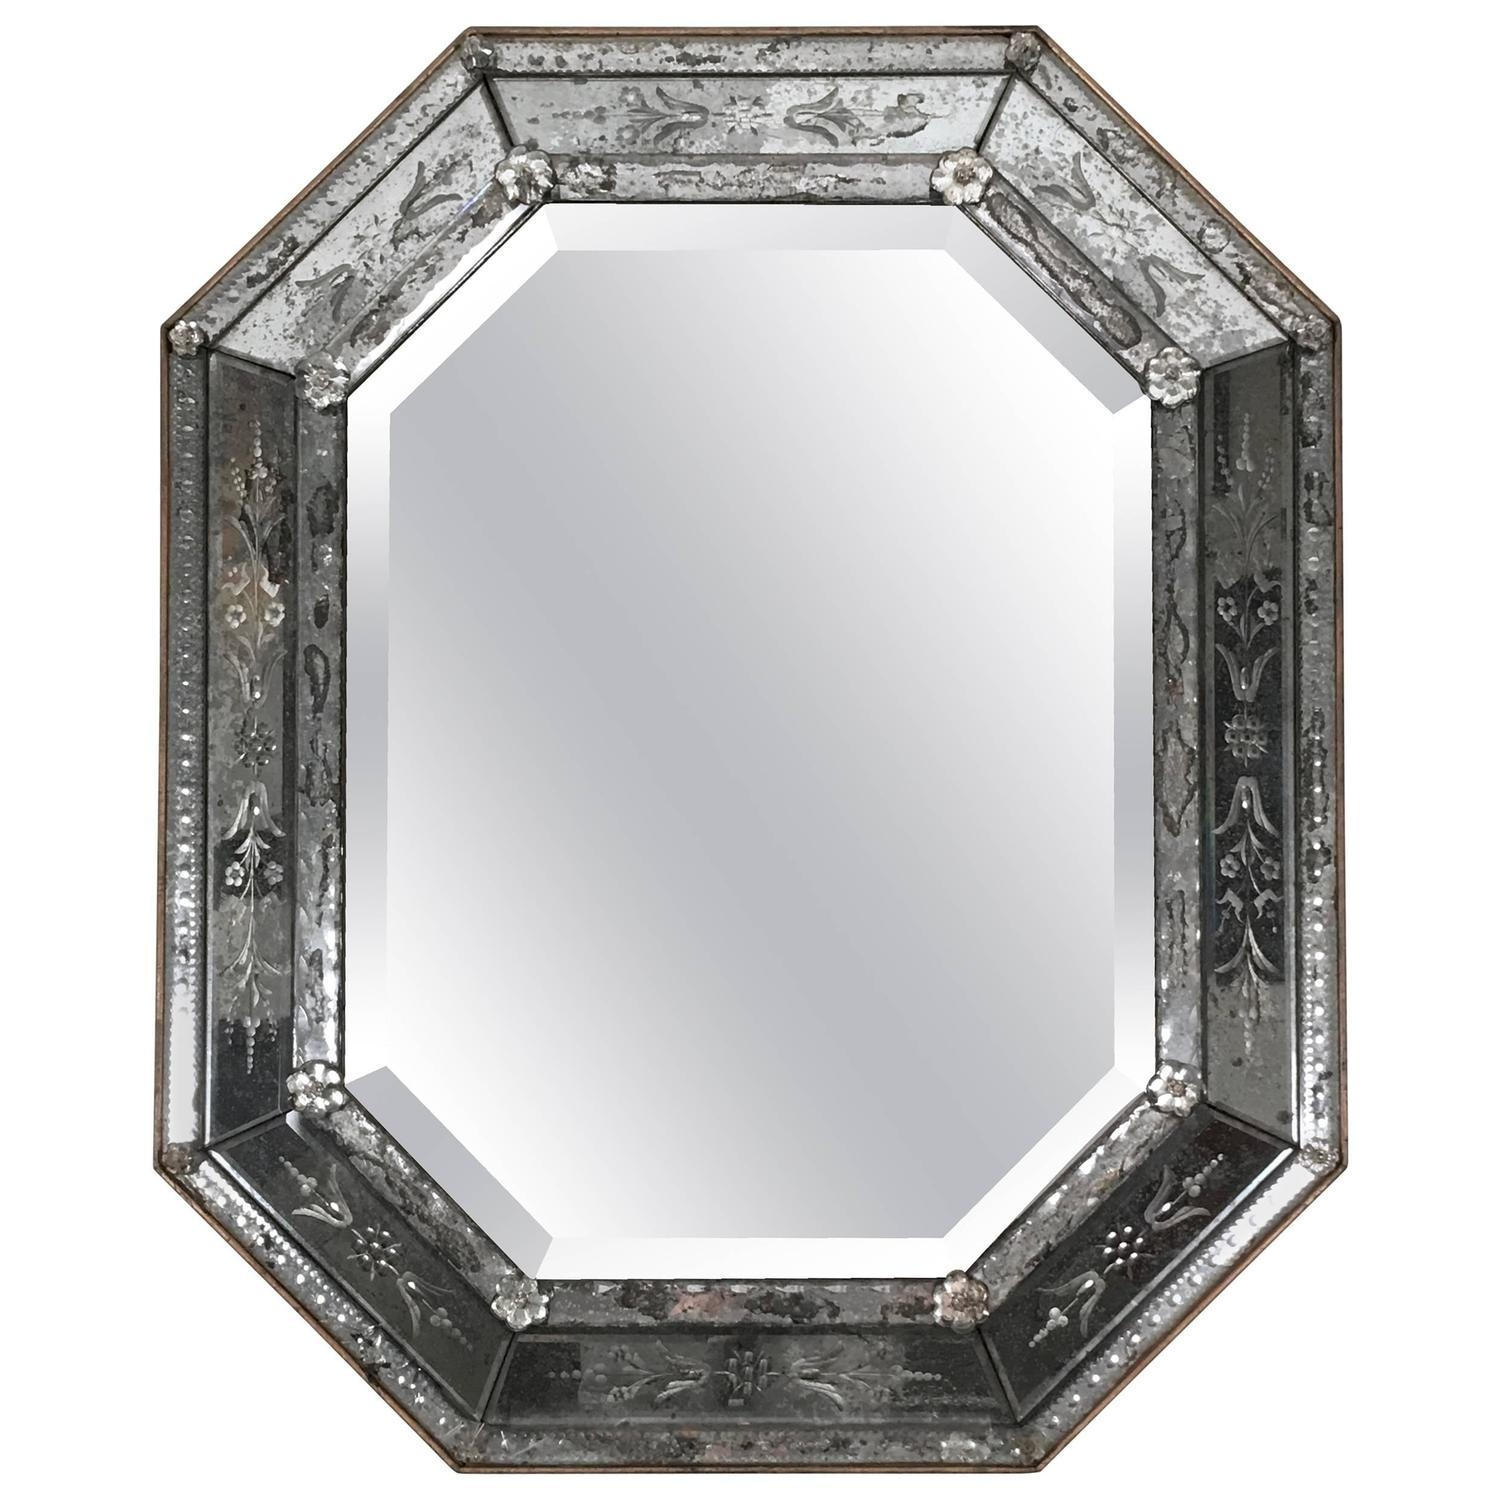 Venetian Etched Glass Octagonal Mirror At 1Stdibs Intended For Black Venetian Mirror (View 20 of 20)